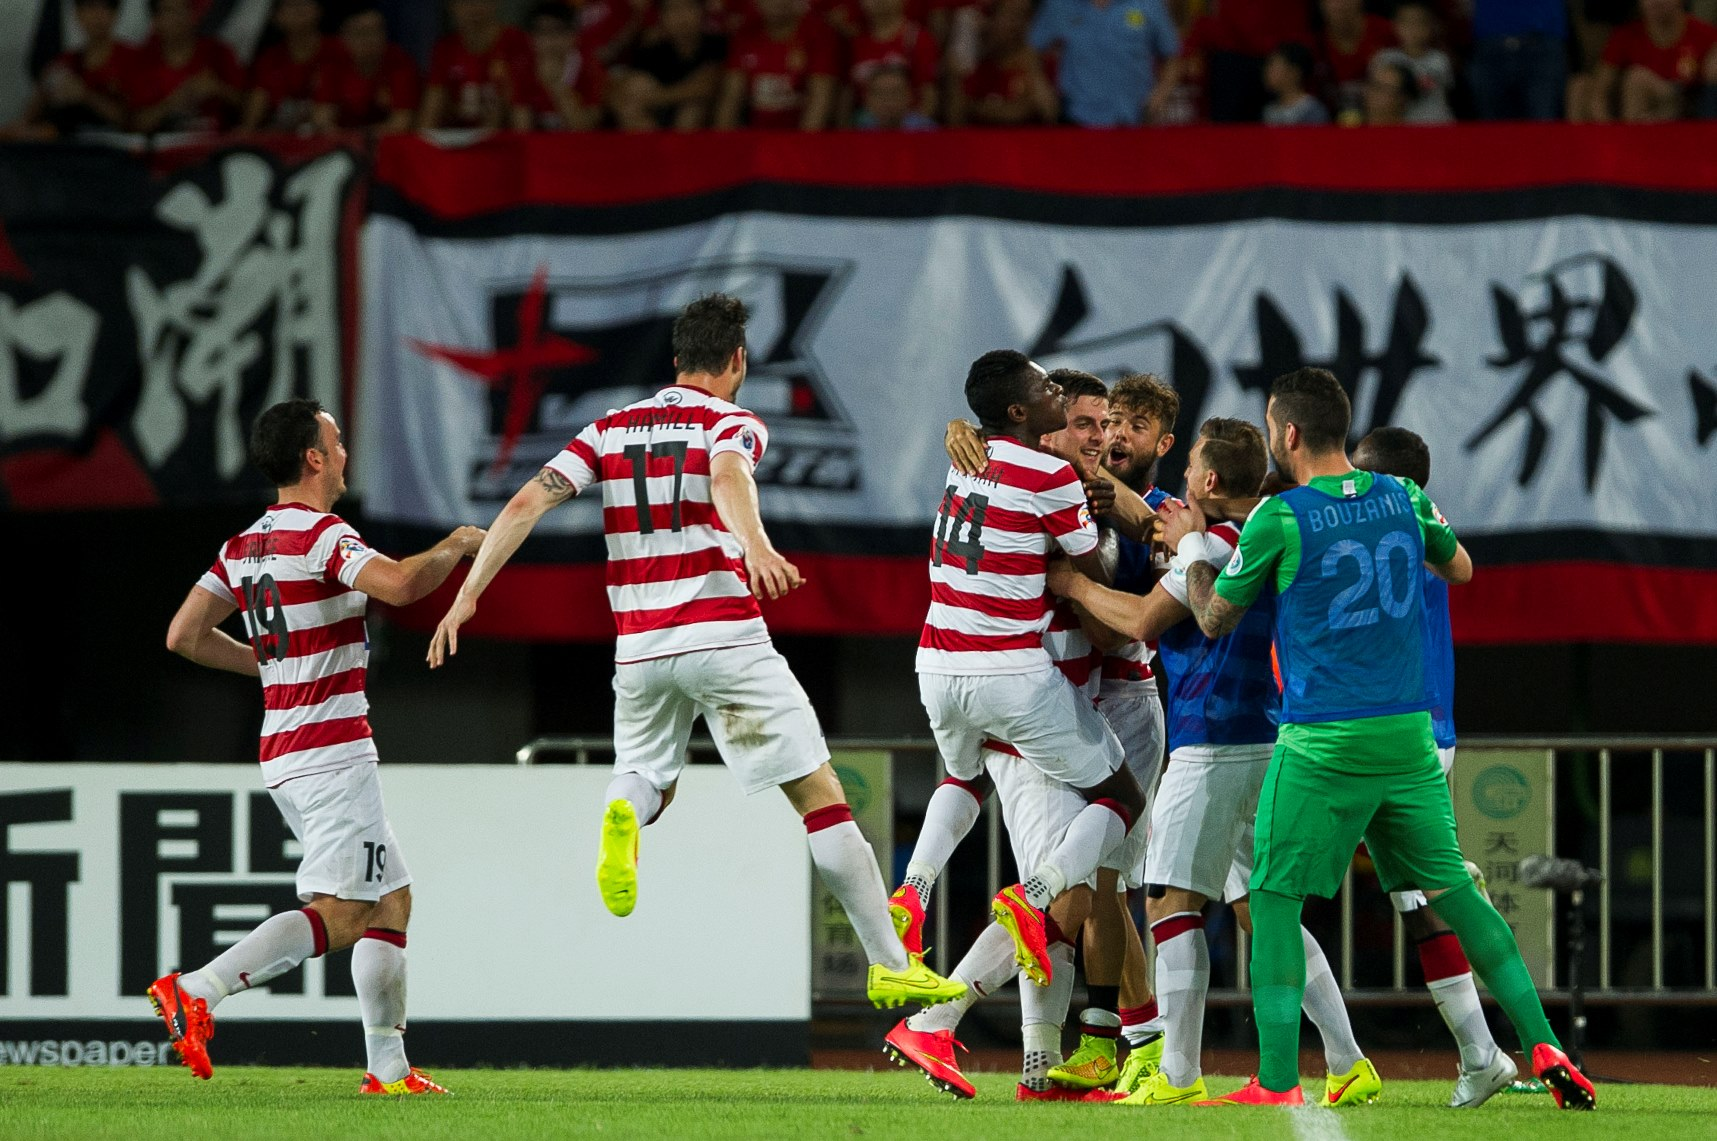 Australia's Western Sydney Wanderers will face Korea Republic's FC  Seoul in the semi-finals of the AFC Champions League next month after edging out defending champions Guangzhou Evergrande on away goals in their quarter-final.